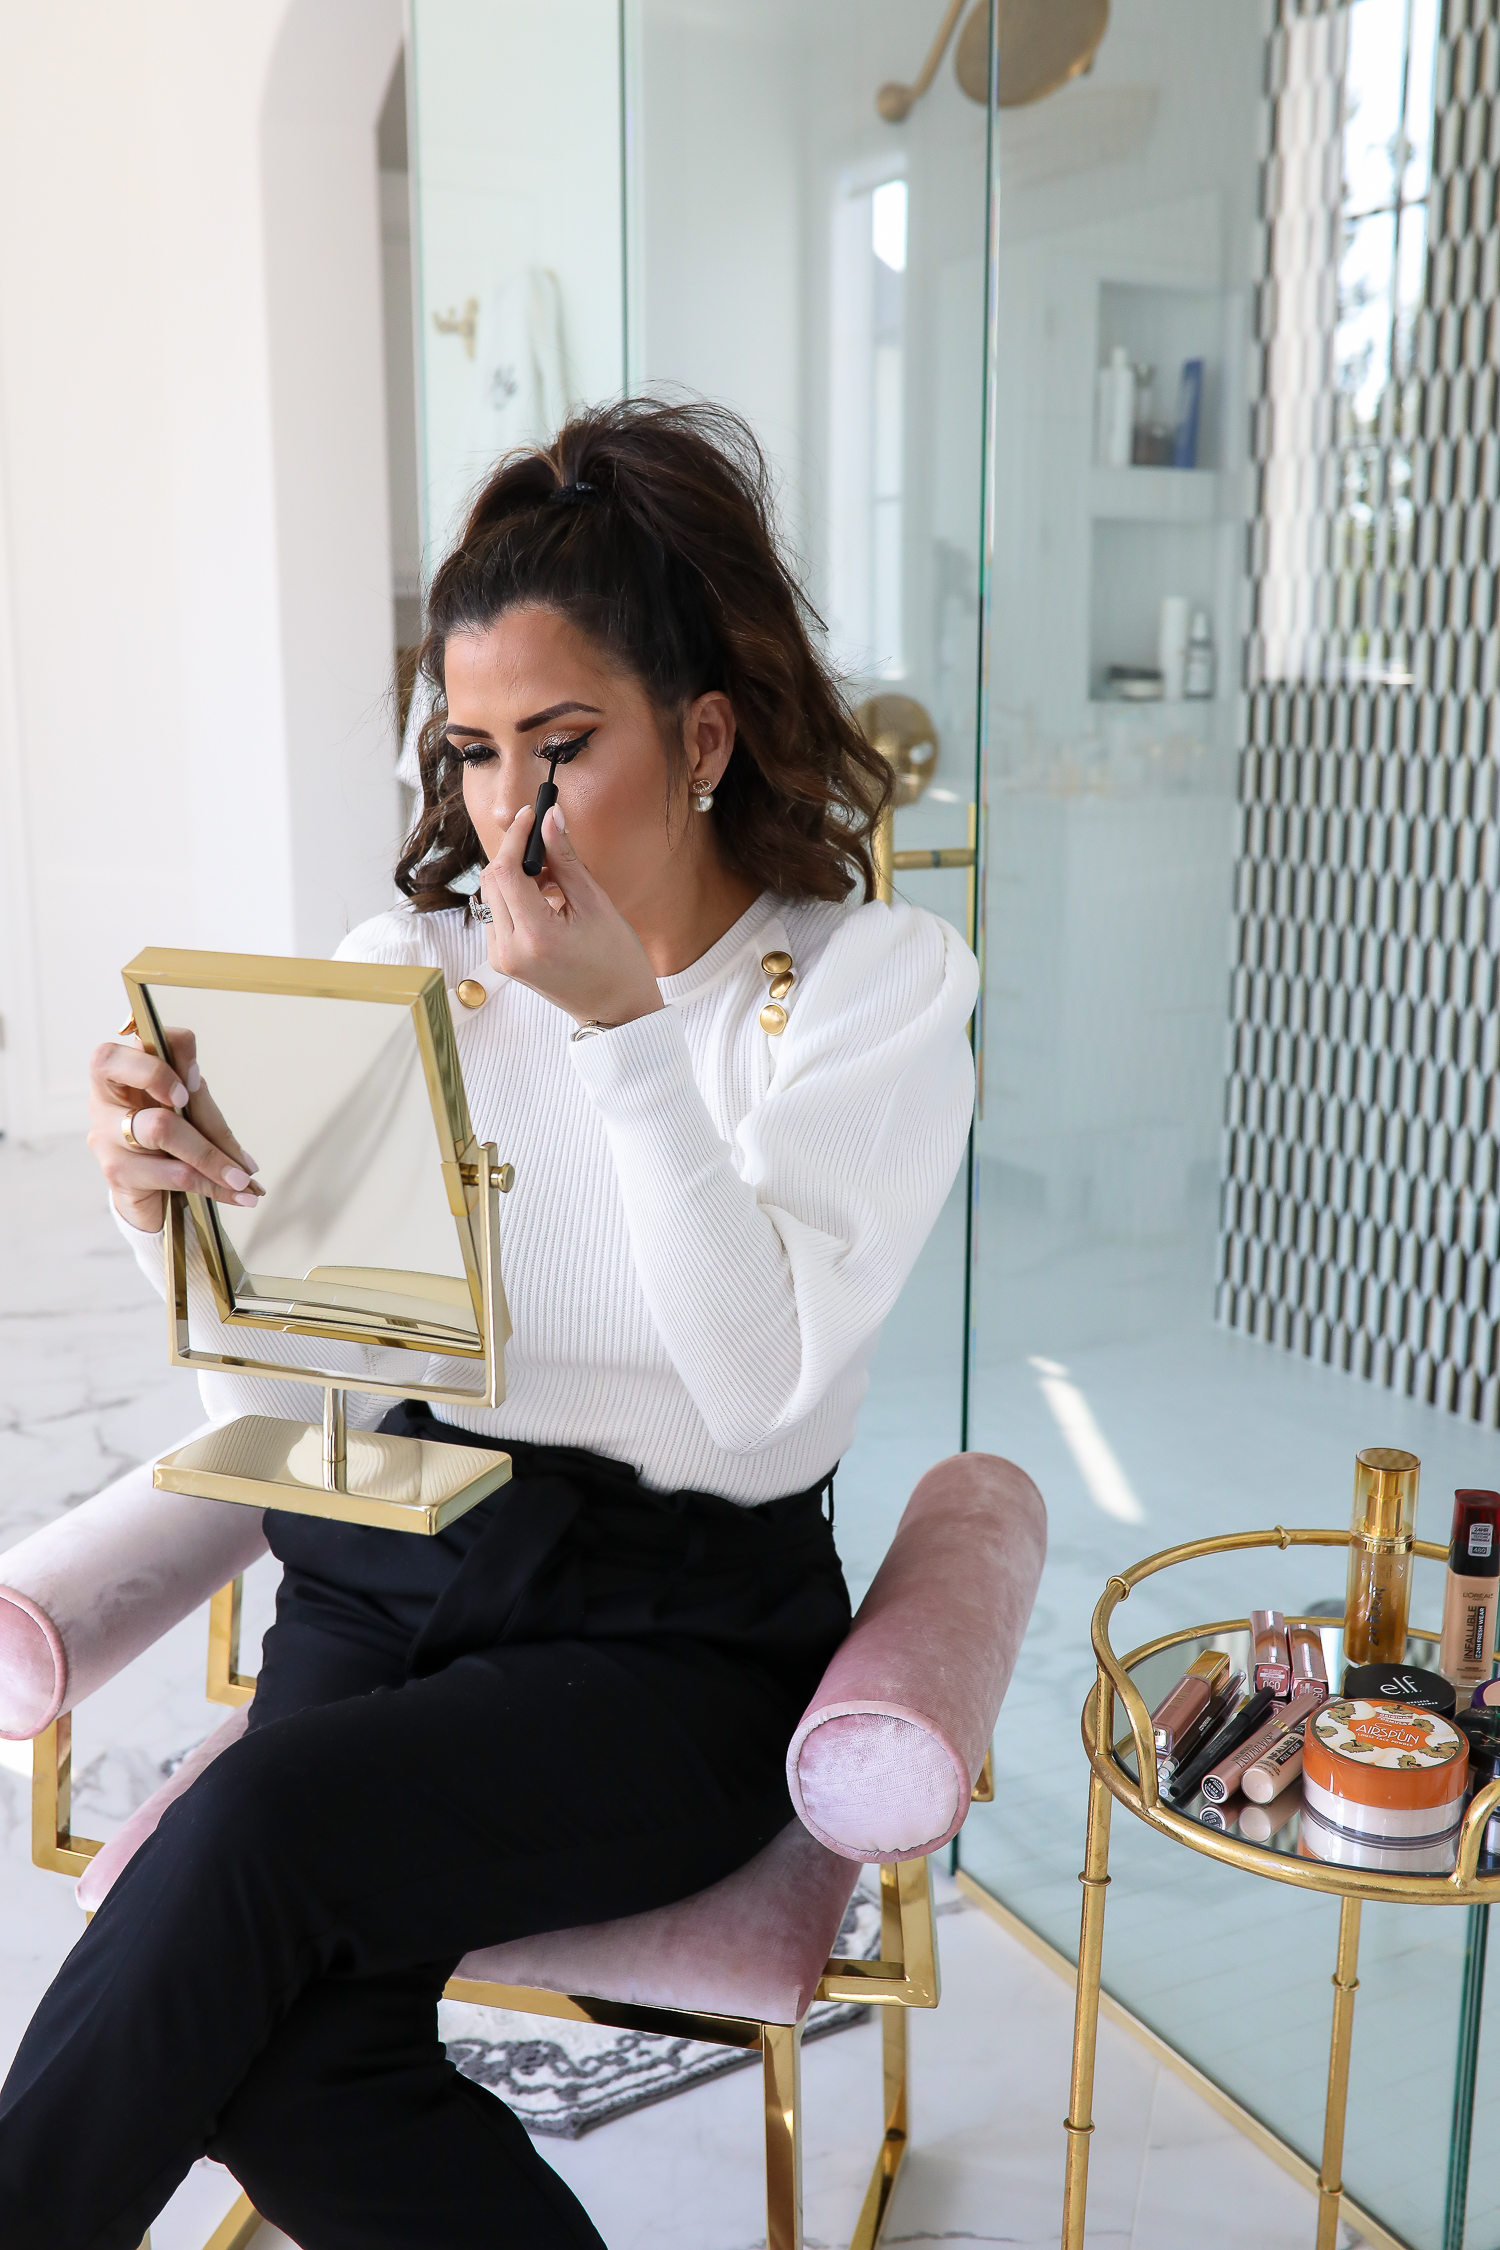 best drug store makeup fall 2019, popular beauty bloggers 2019, best drugstore makeup 2019, emily ann gemma-2 | Best Drugstore Makeup by popular US beauty blog, The Sweetest Thing: image of a woman applying liquid eyeliner.